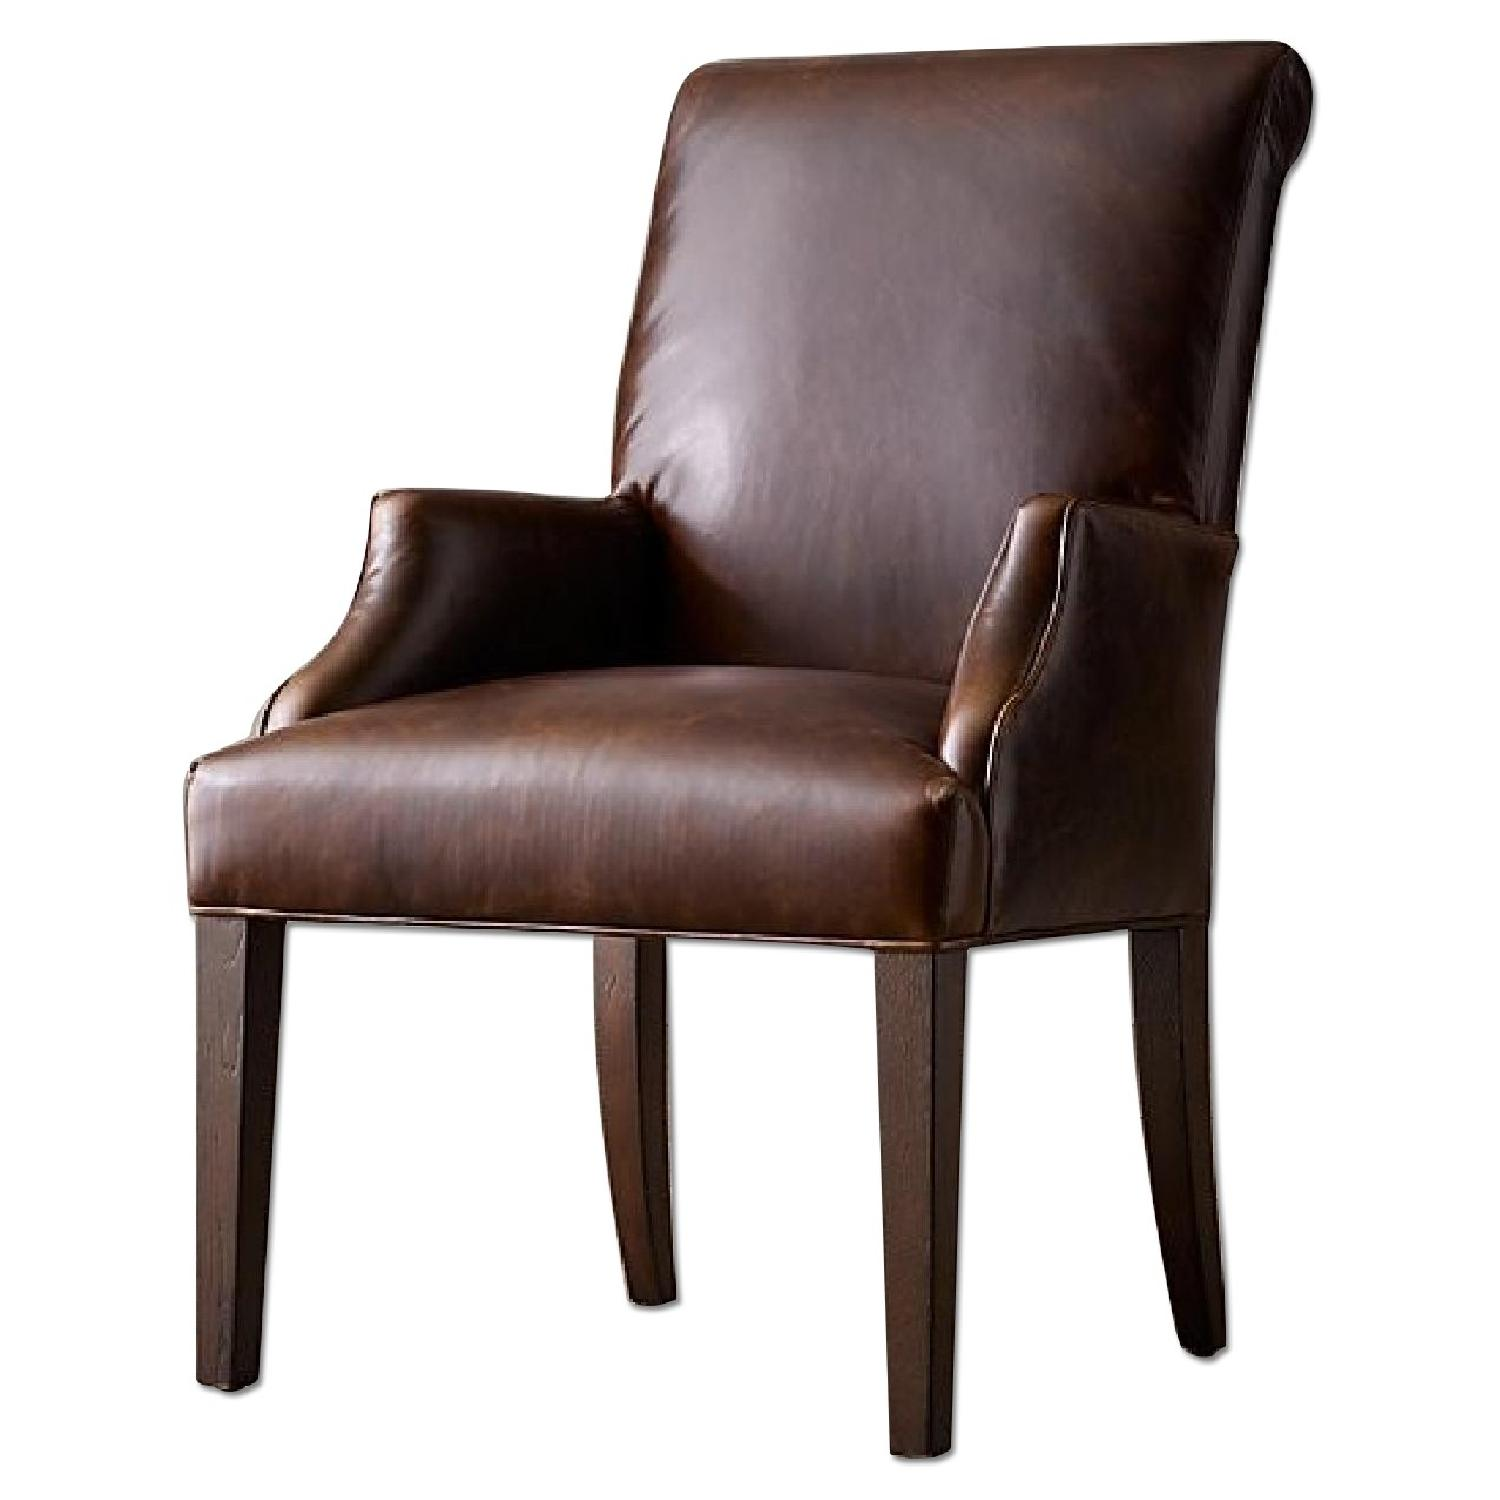 Restoration Hardware Hudson Roll Back Leather Armchair - image-0